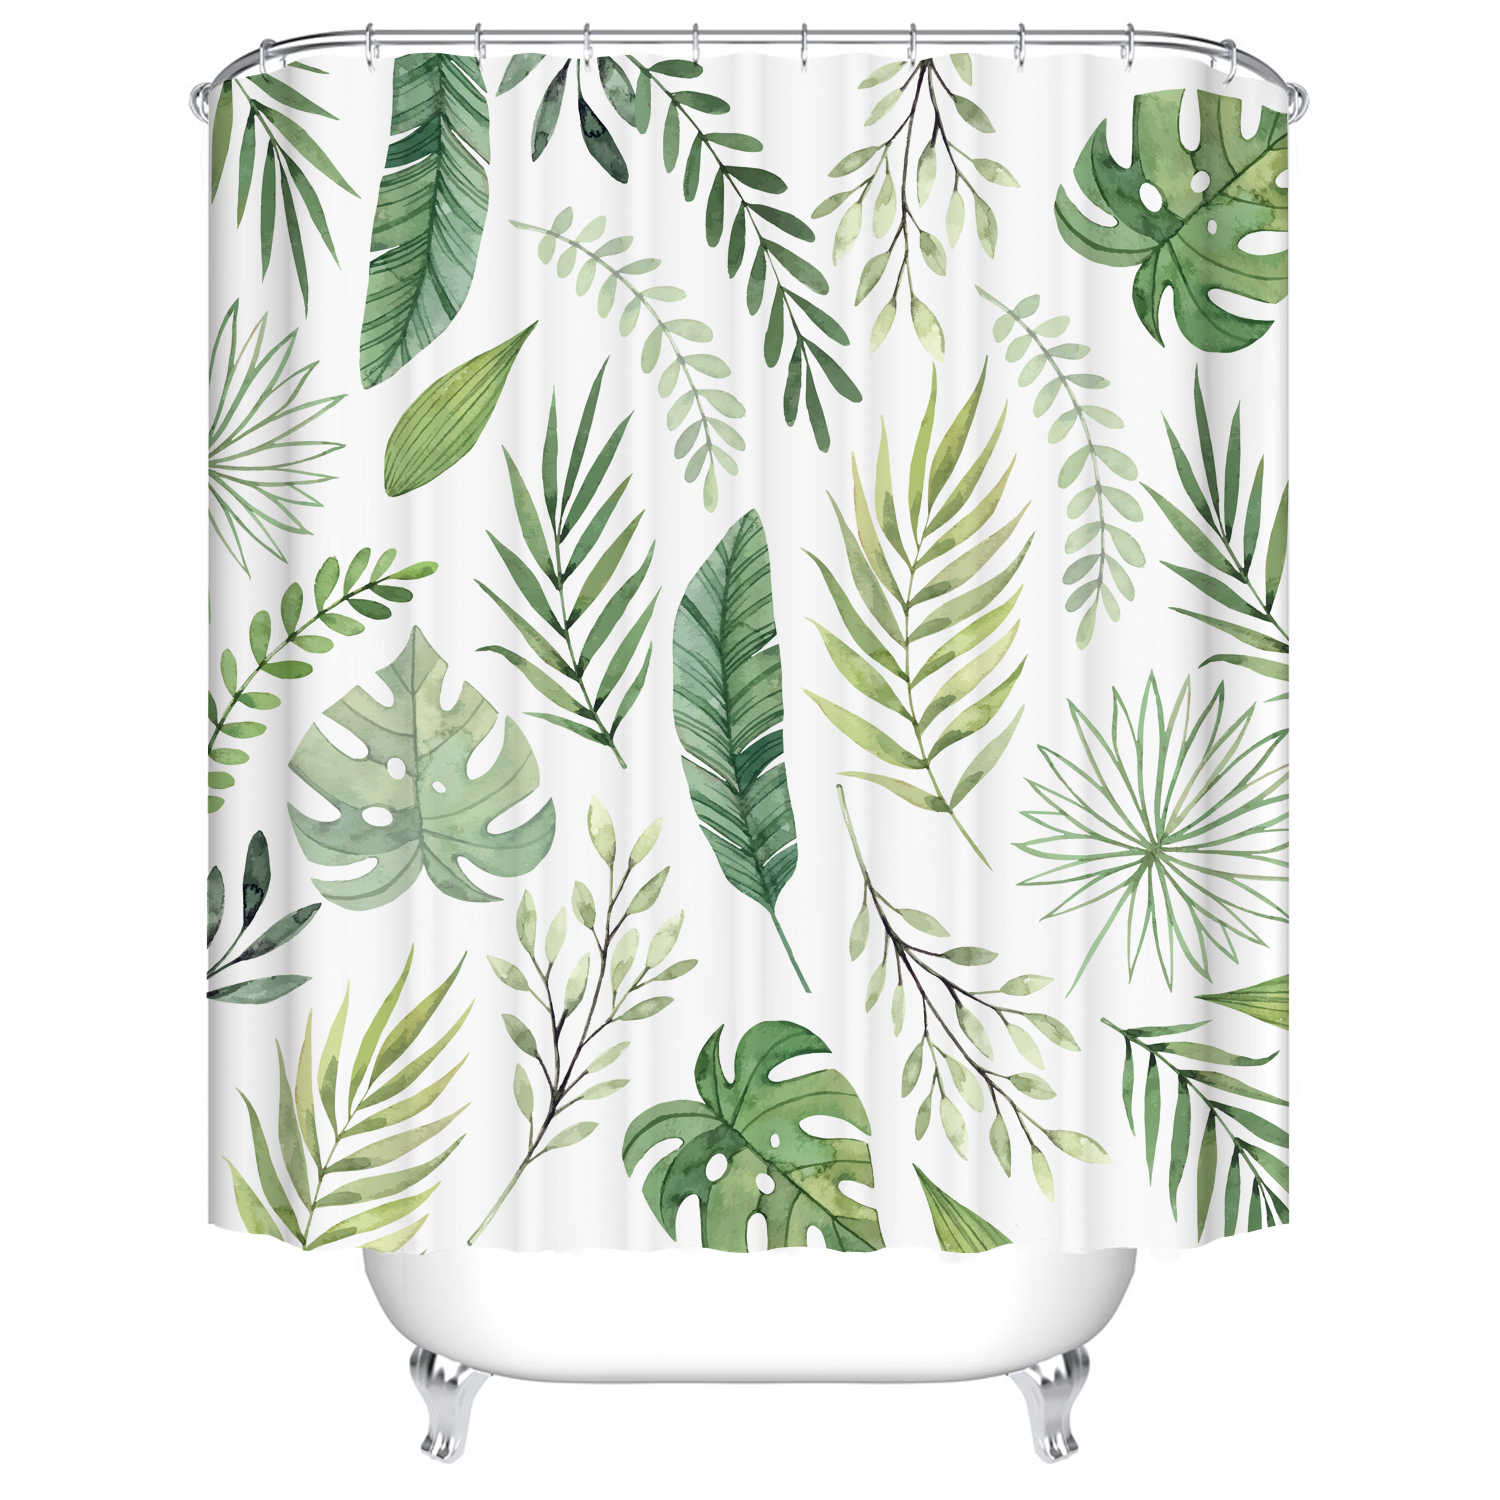 African Shower Curtains Sets Tropical Green Plant Palm Leaf Monstera Bathroom Shower Curtain Frabic Waterproof Bath Curtain